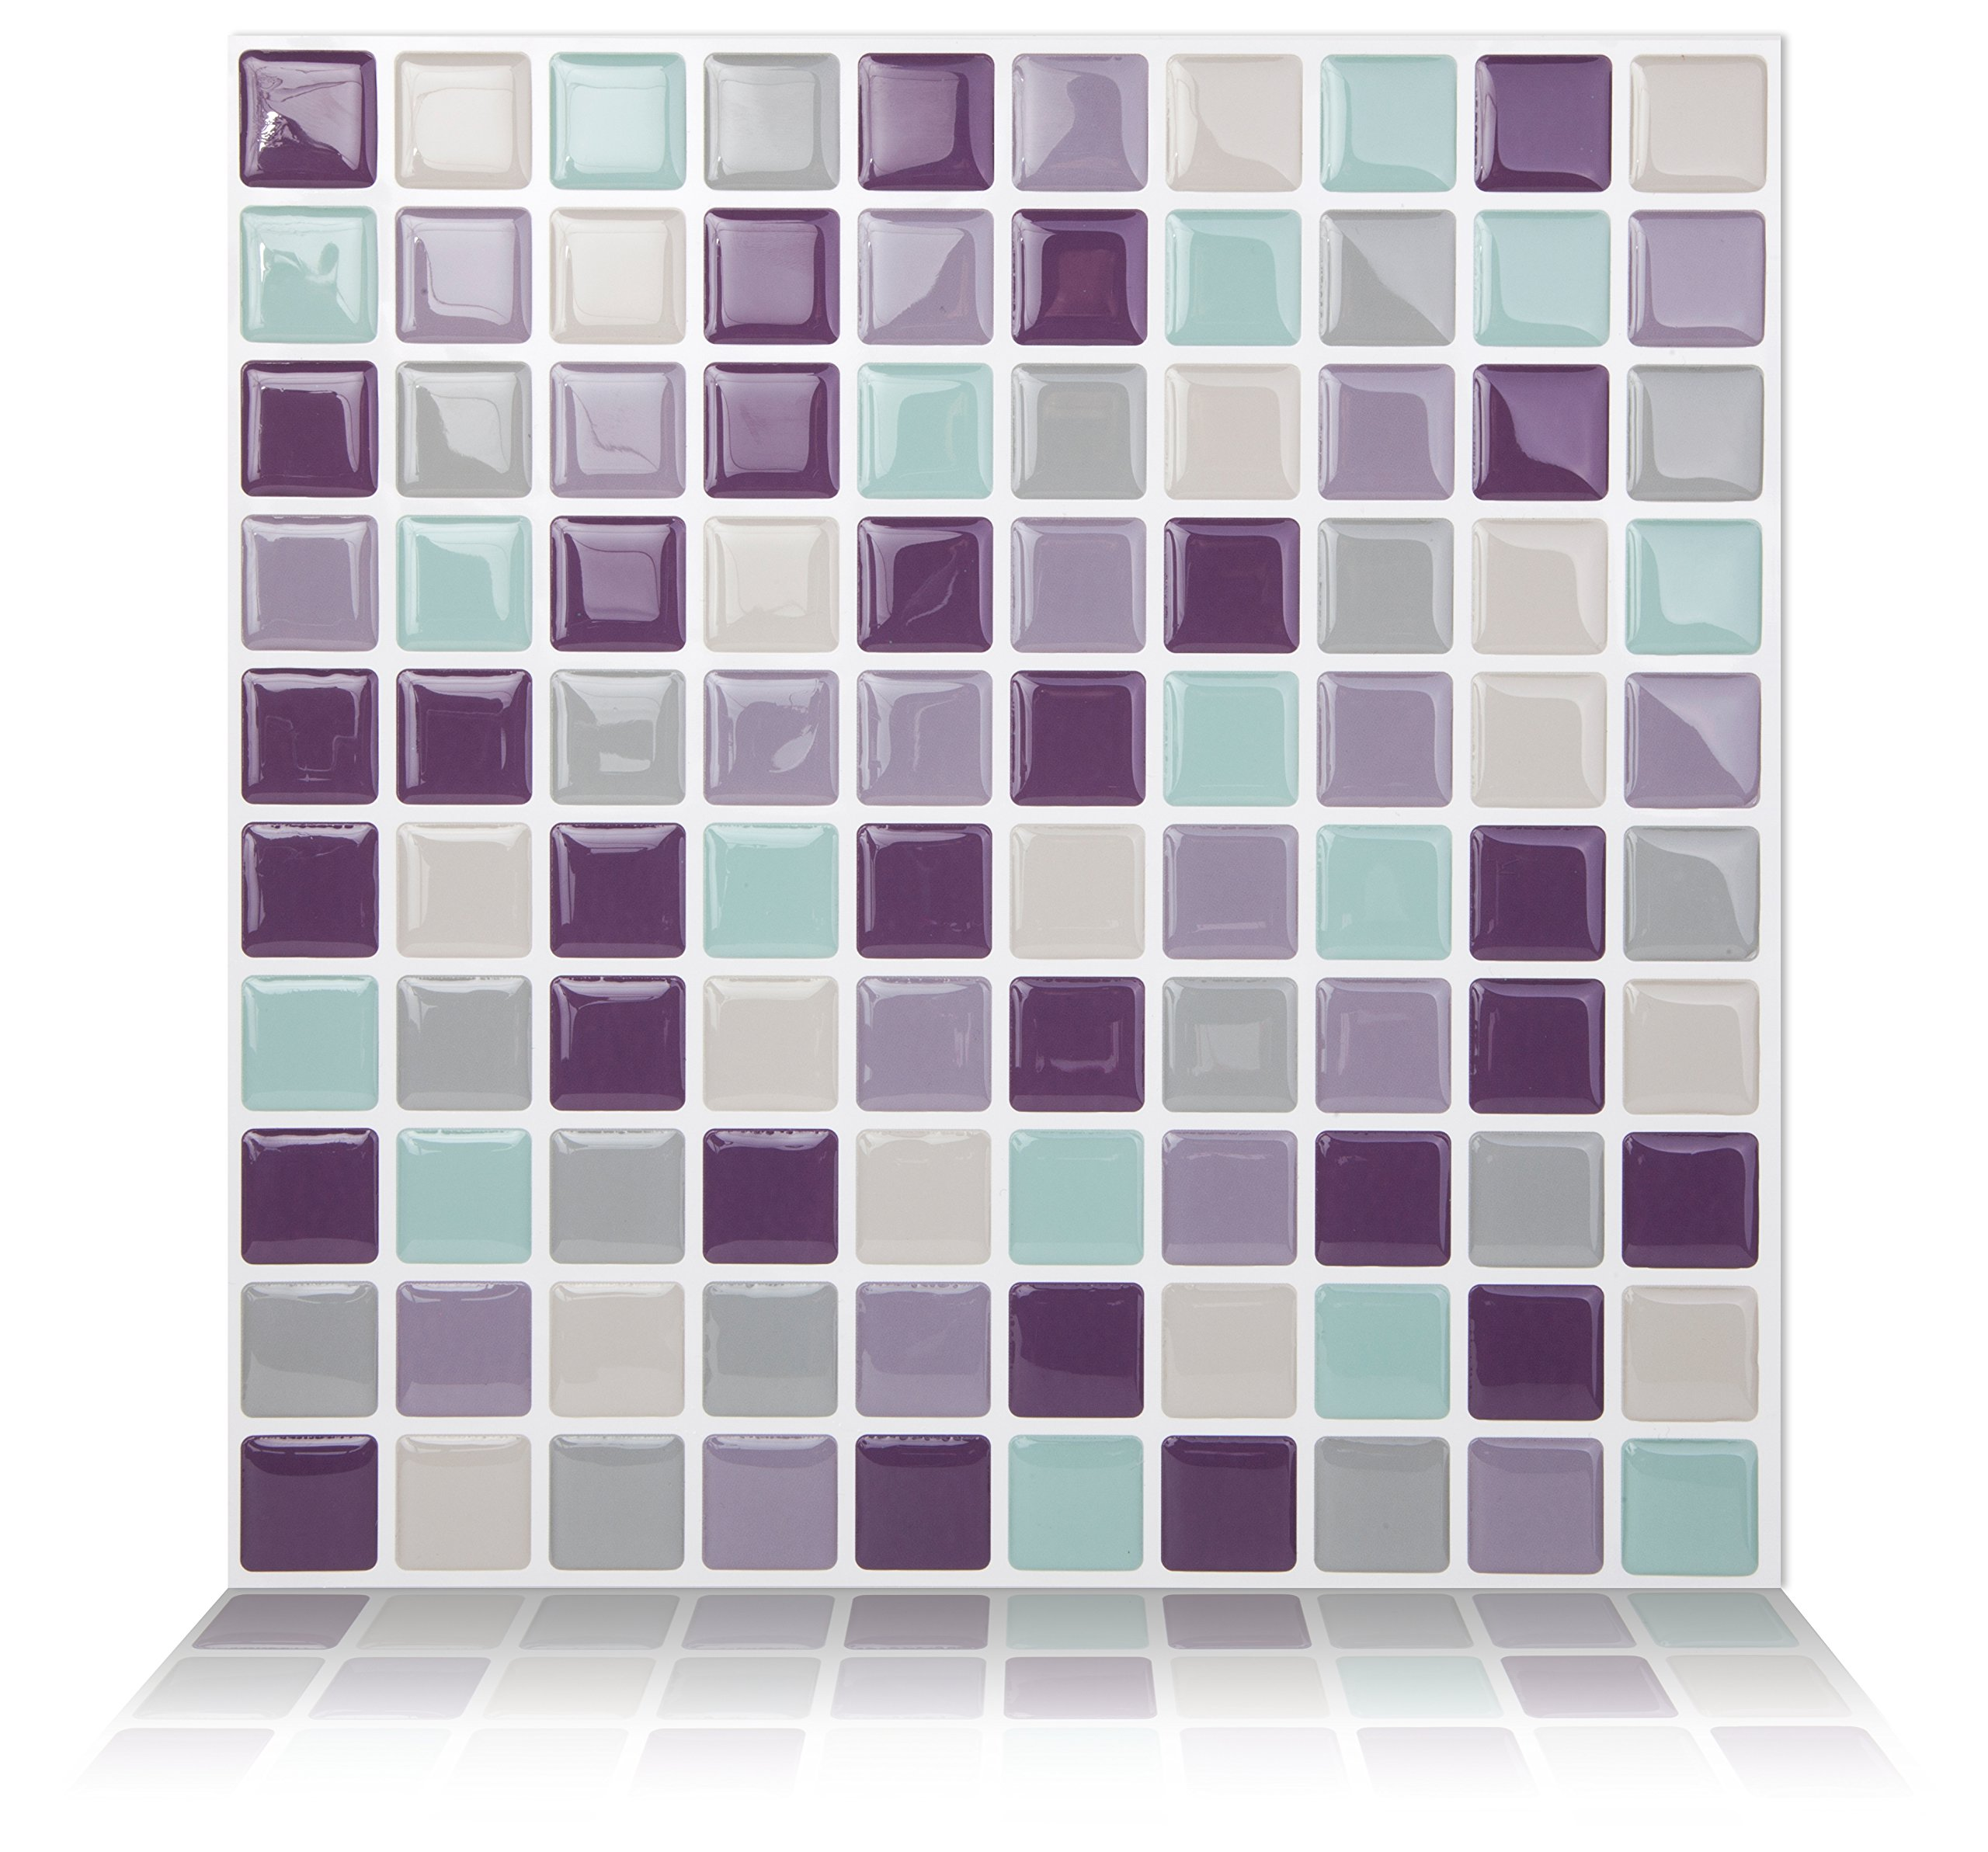 Tic Tac Tiles Anti-Mold Peel and Stick Wall Tile in Mosaic Violetmint (10 Tiles) by Tic Tac Tiles